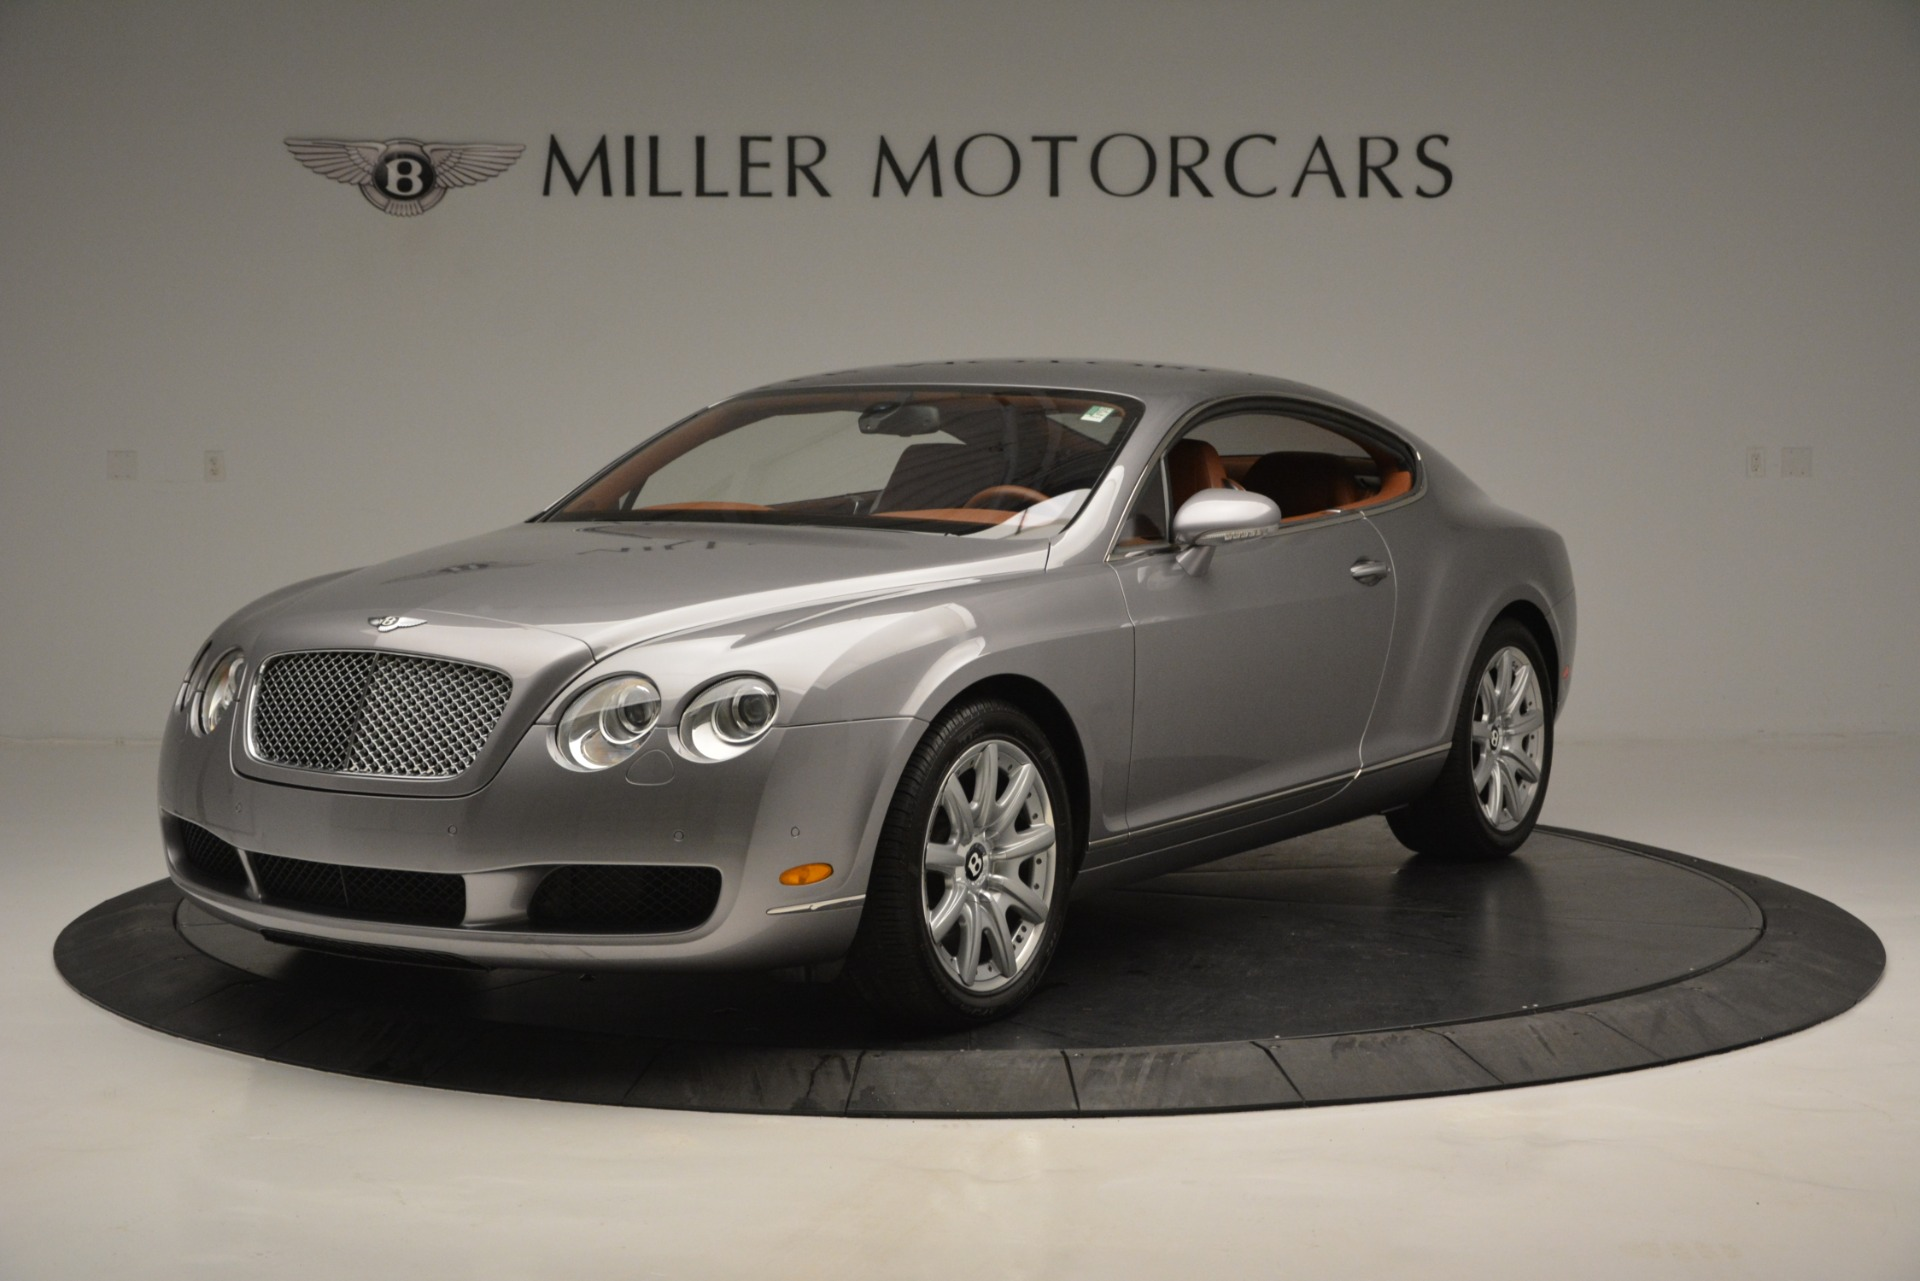 Used 2005 Bentley Continental GT GT Turbo For Sale In Westport, CT 2726_main